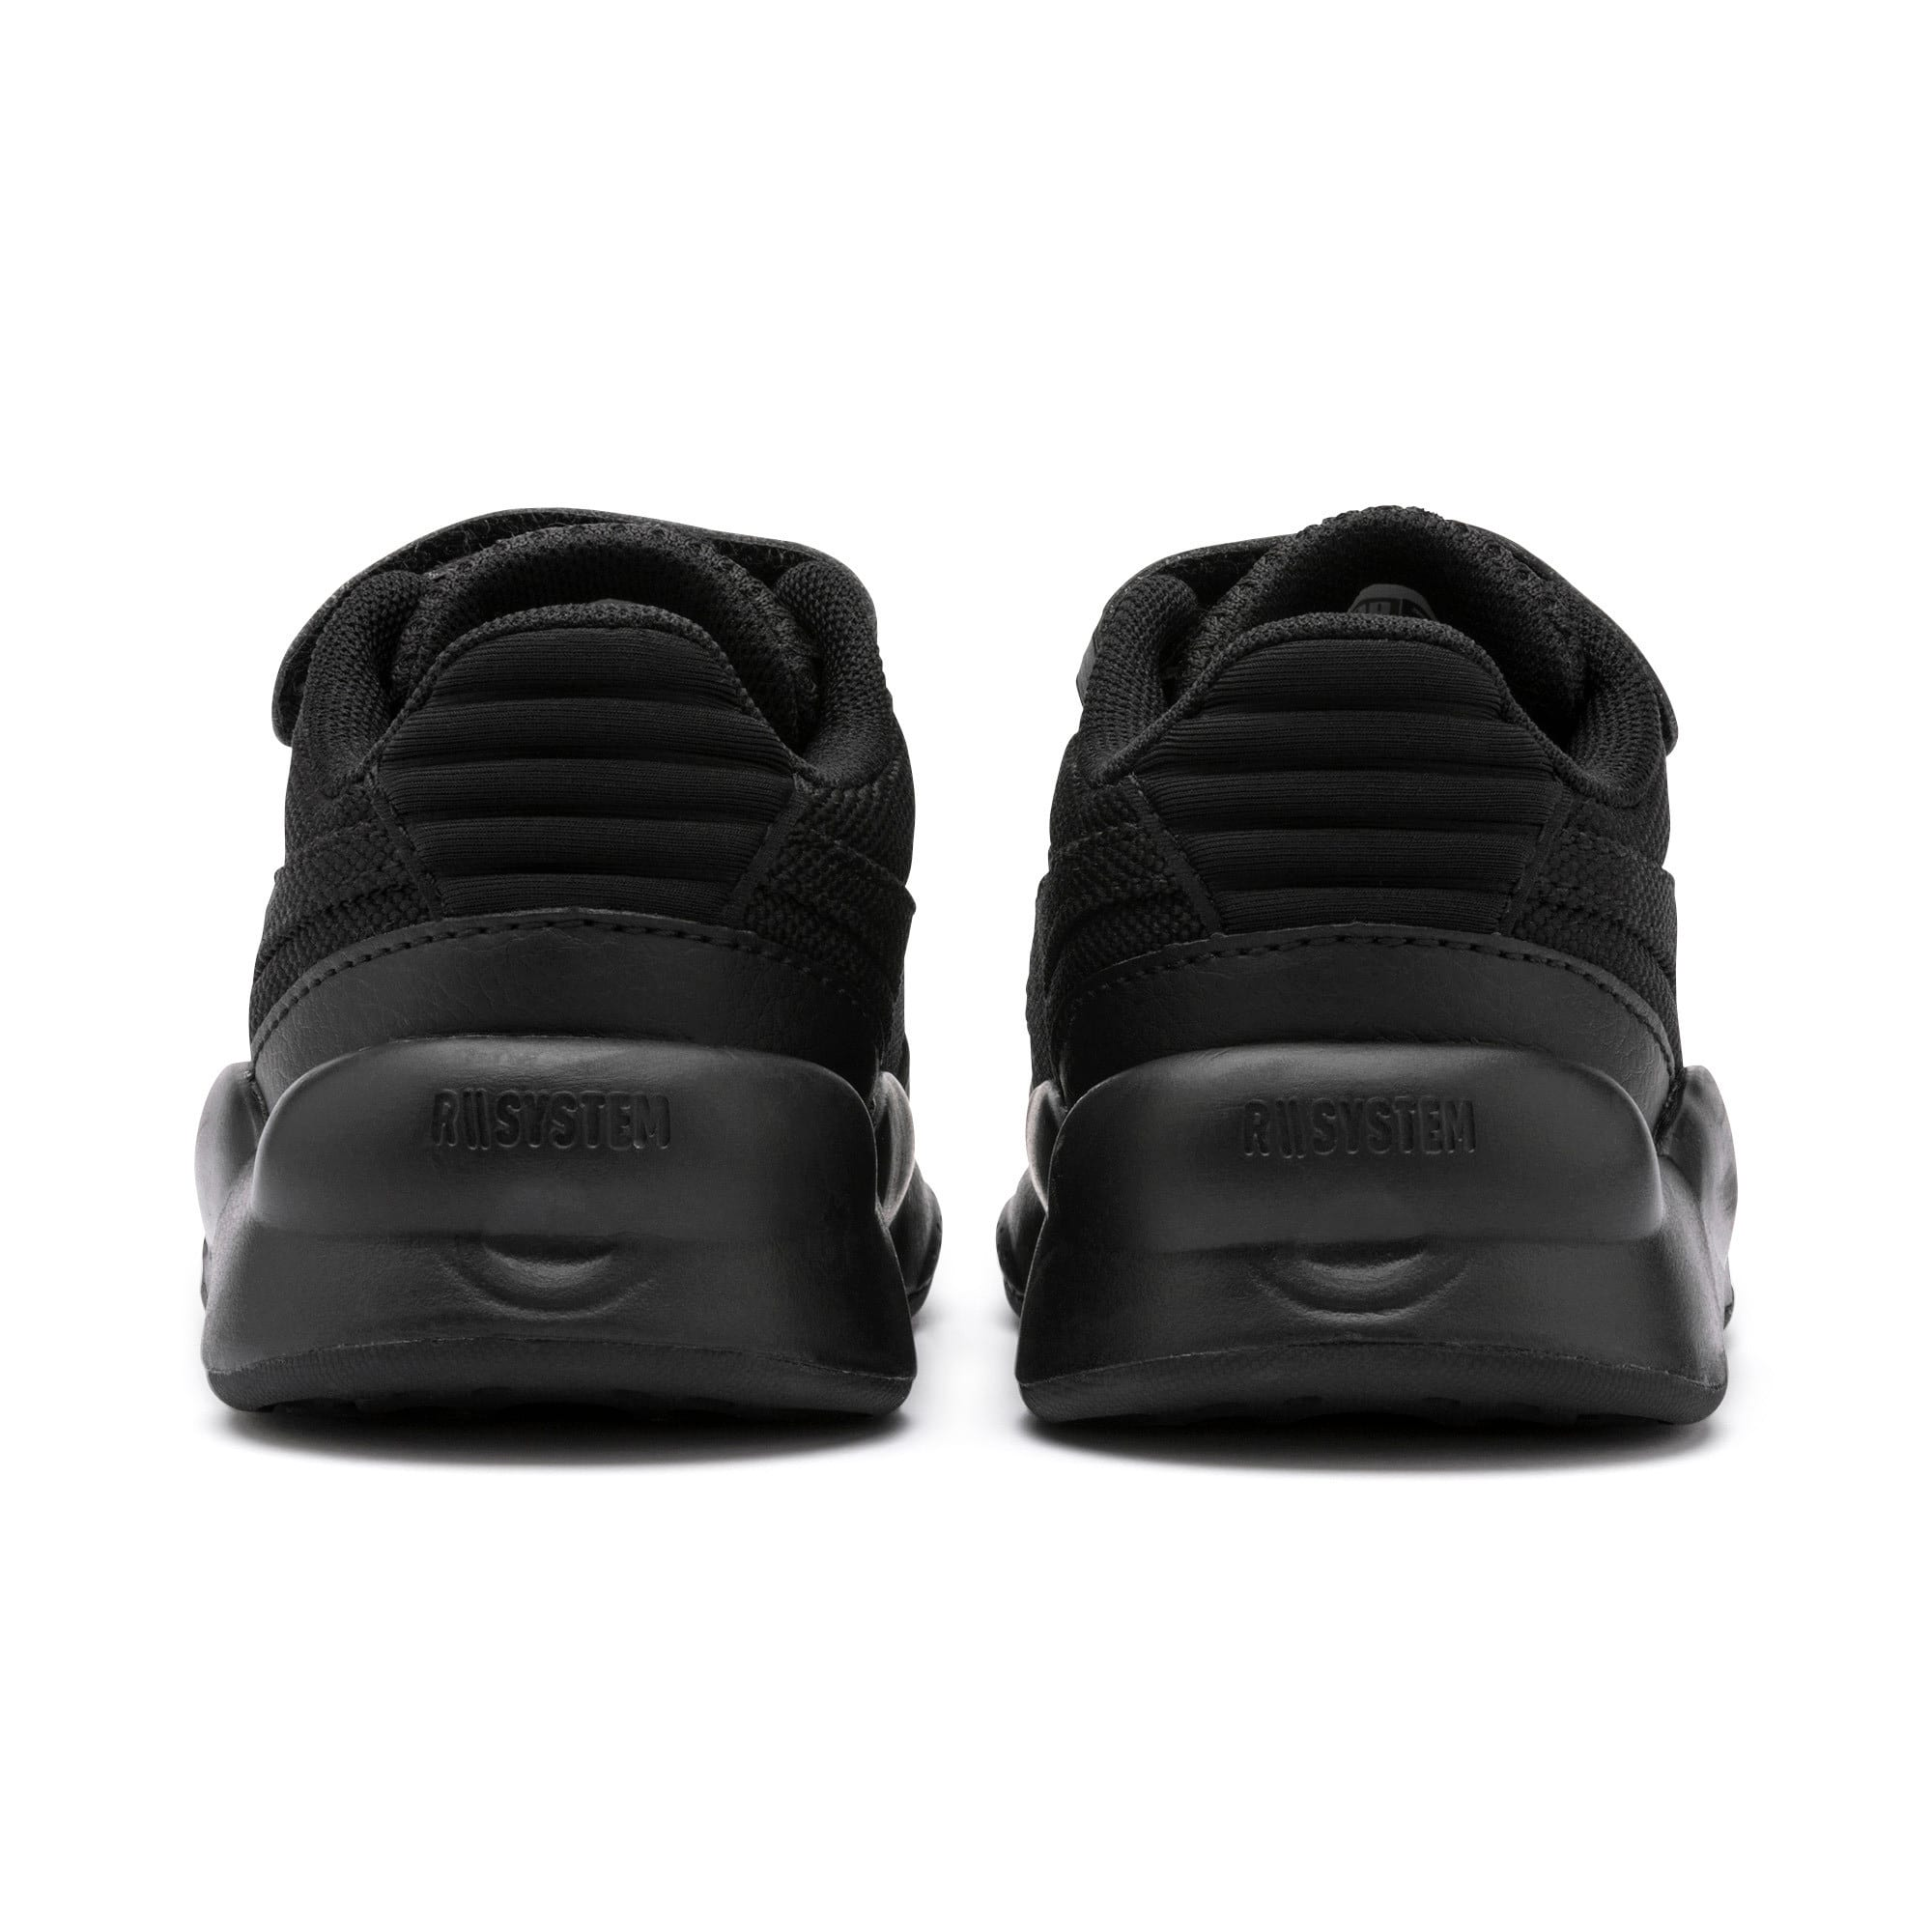 Thumbnail 3 of RS 9.8 Core Toddler Shoes, Puma Black, medium